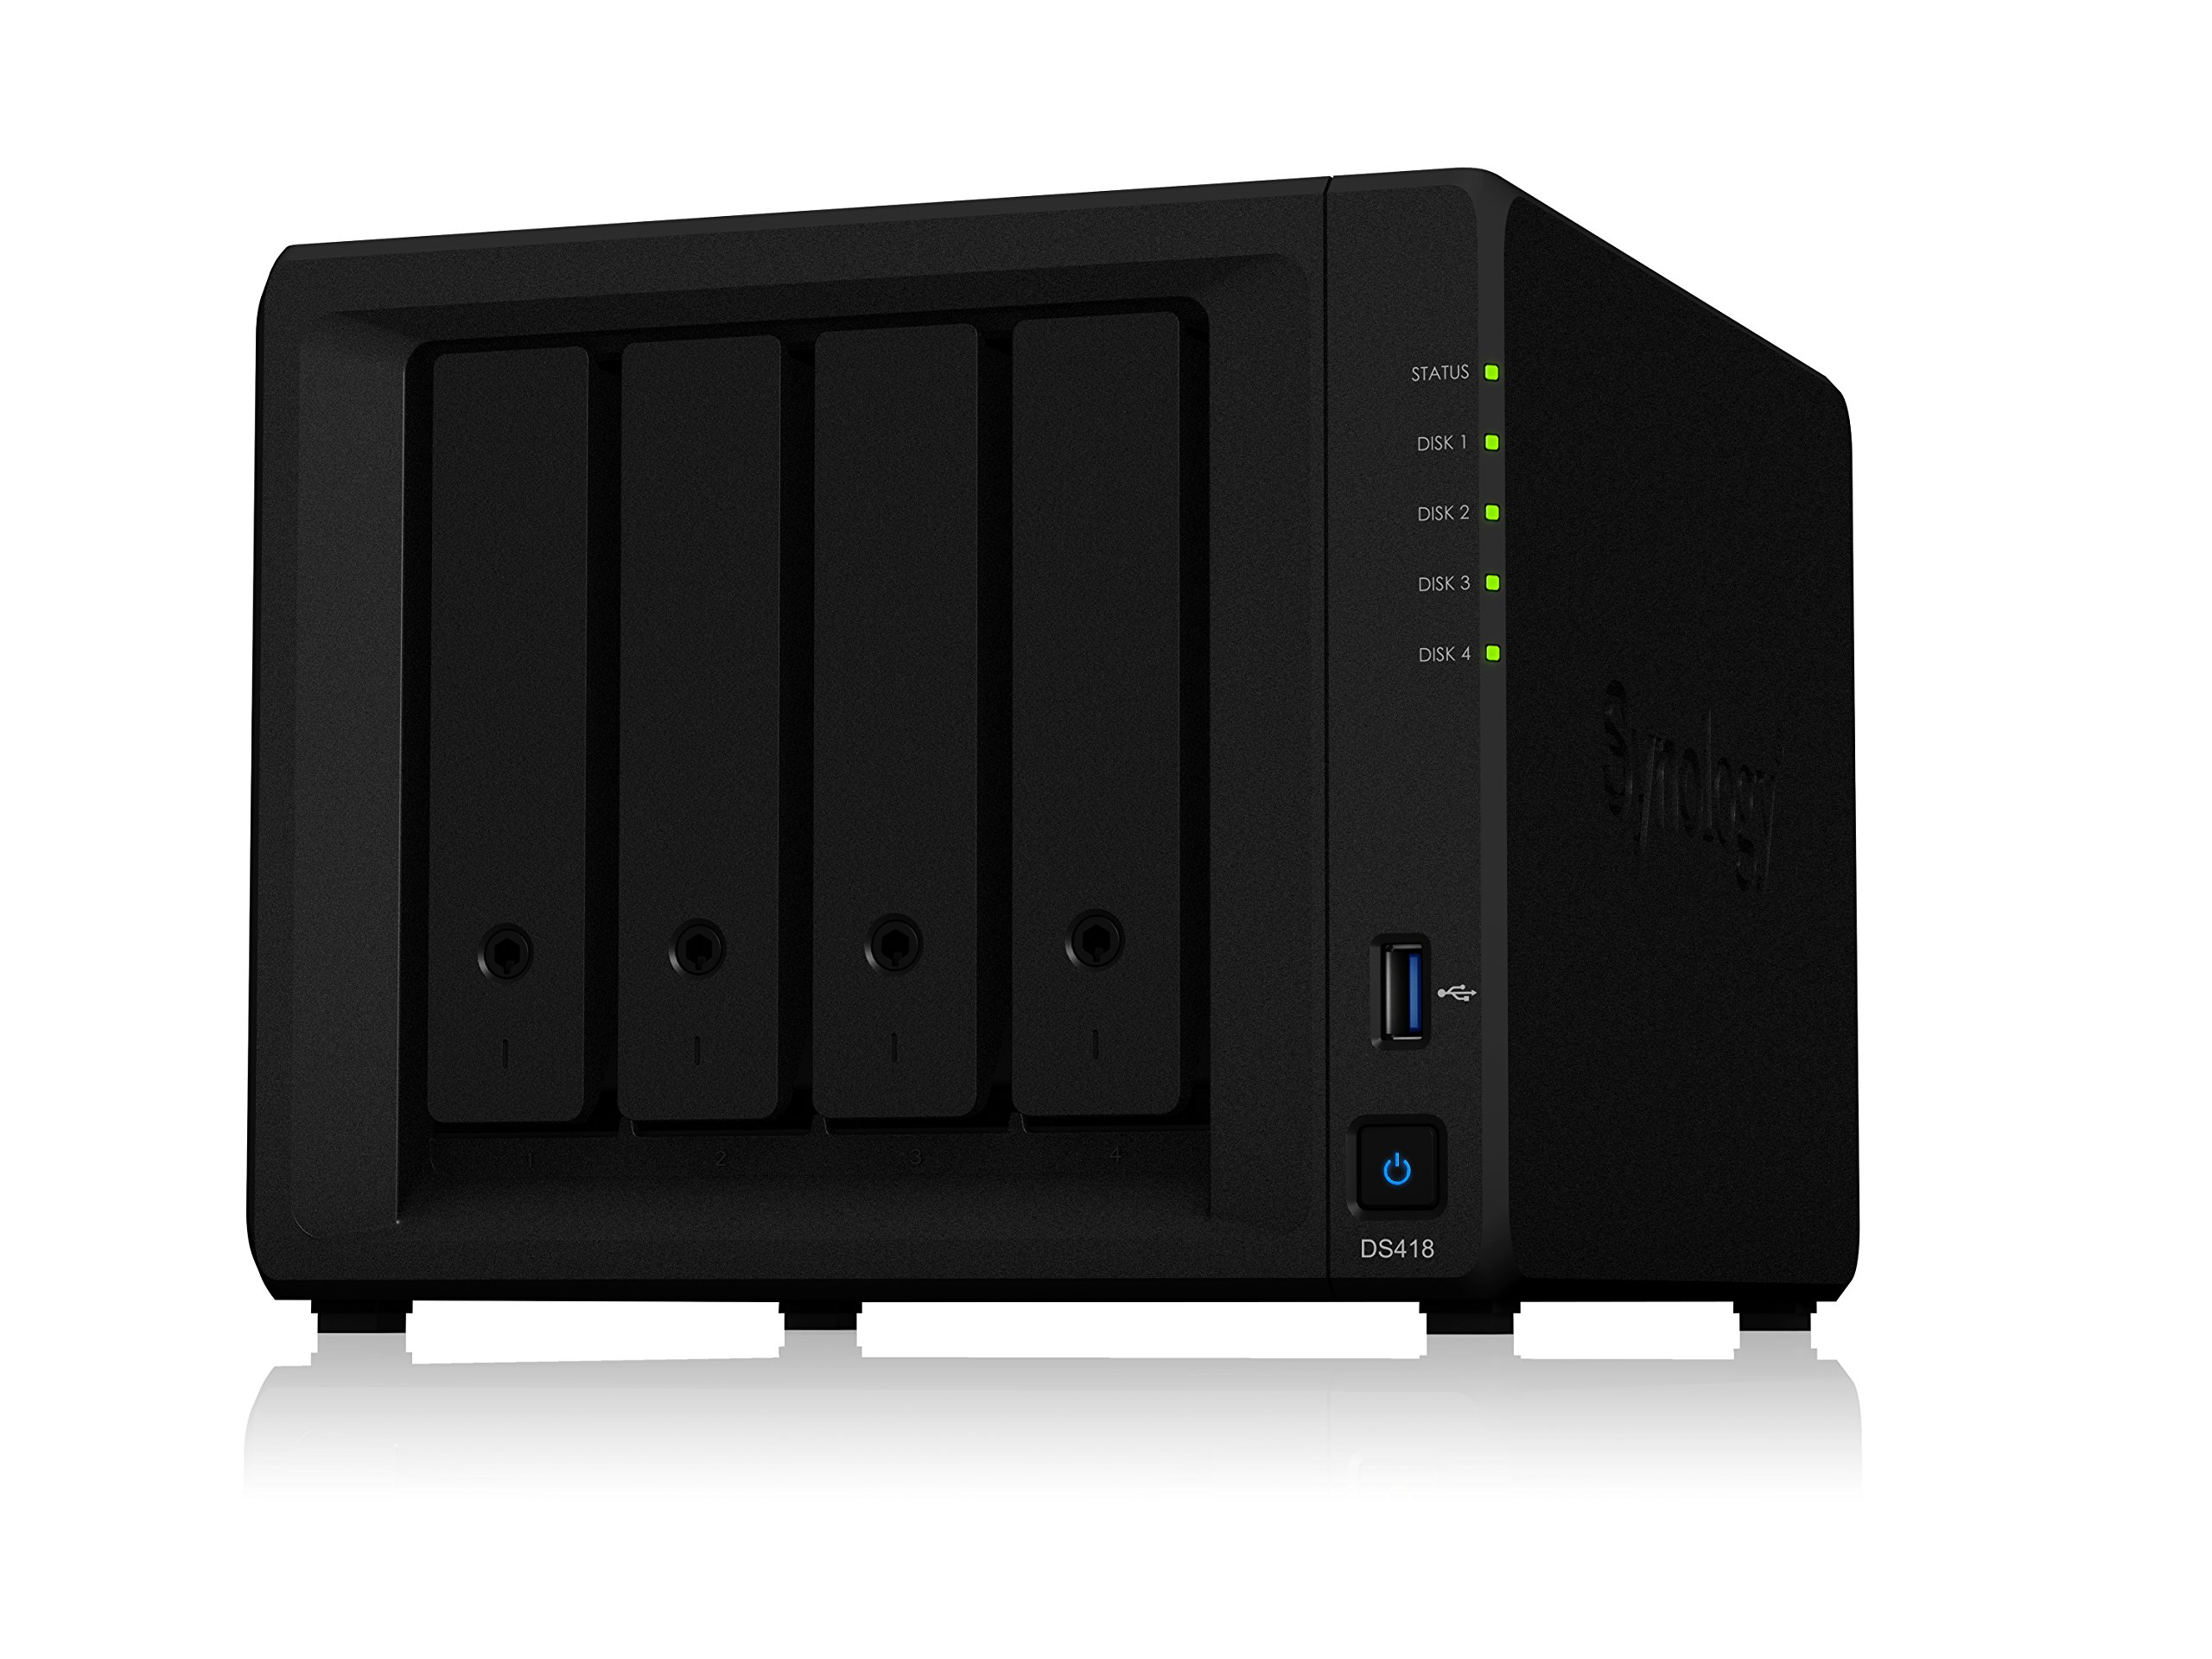 Synology 4 bay NAS DiskStation DS418 (Diskless) by Synology